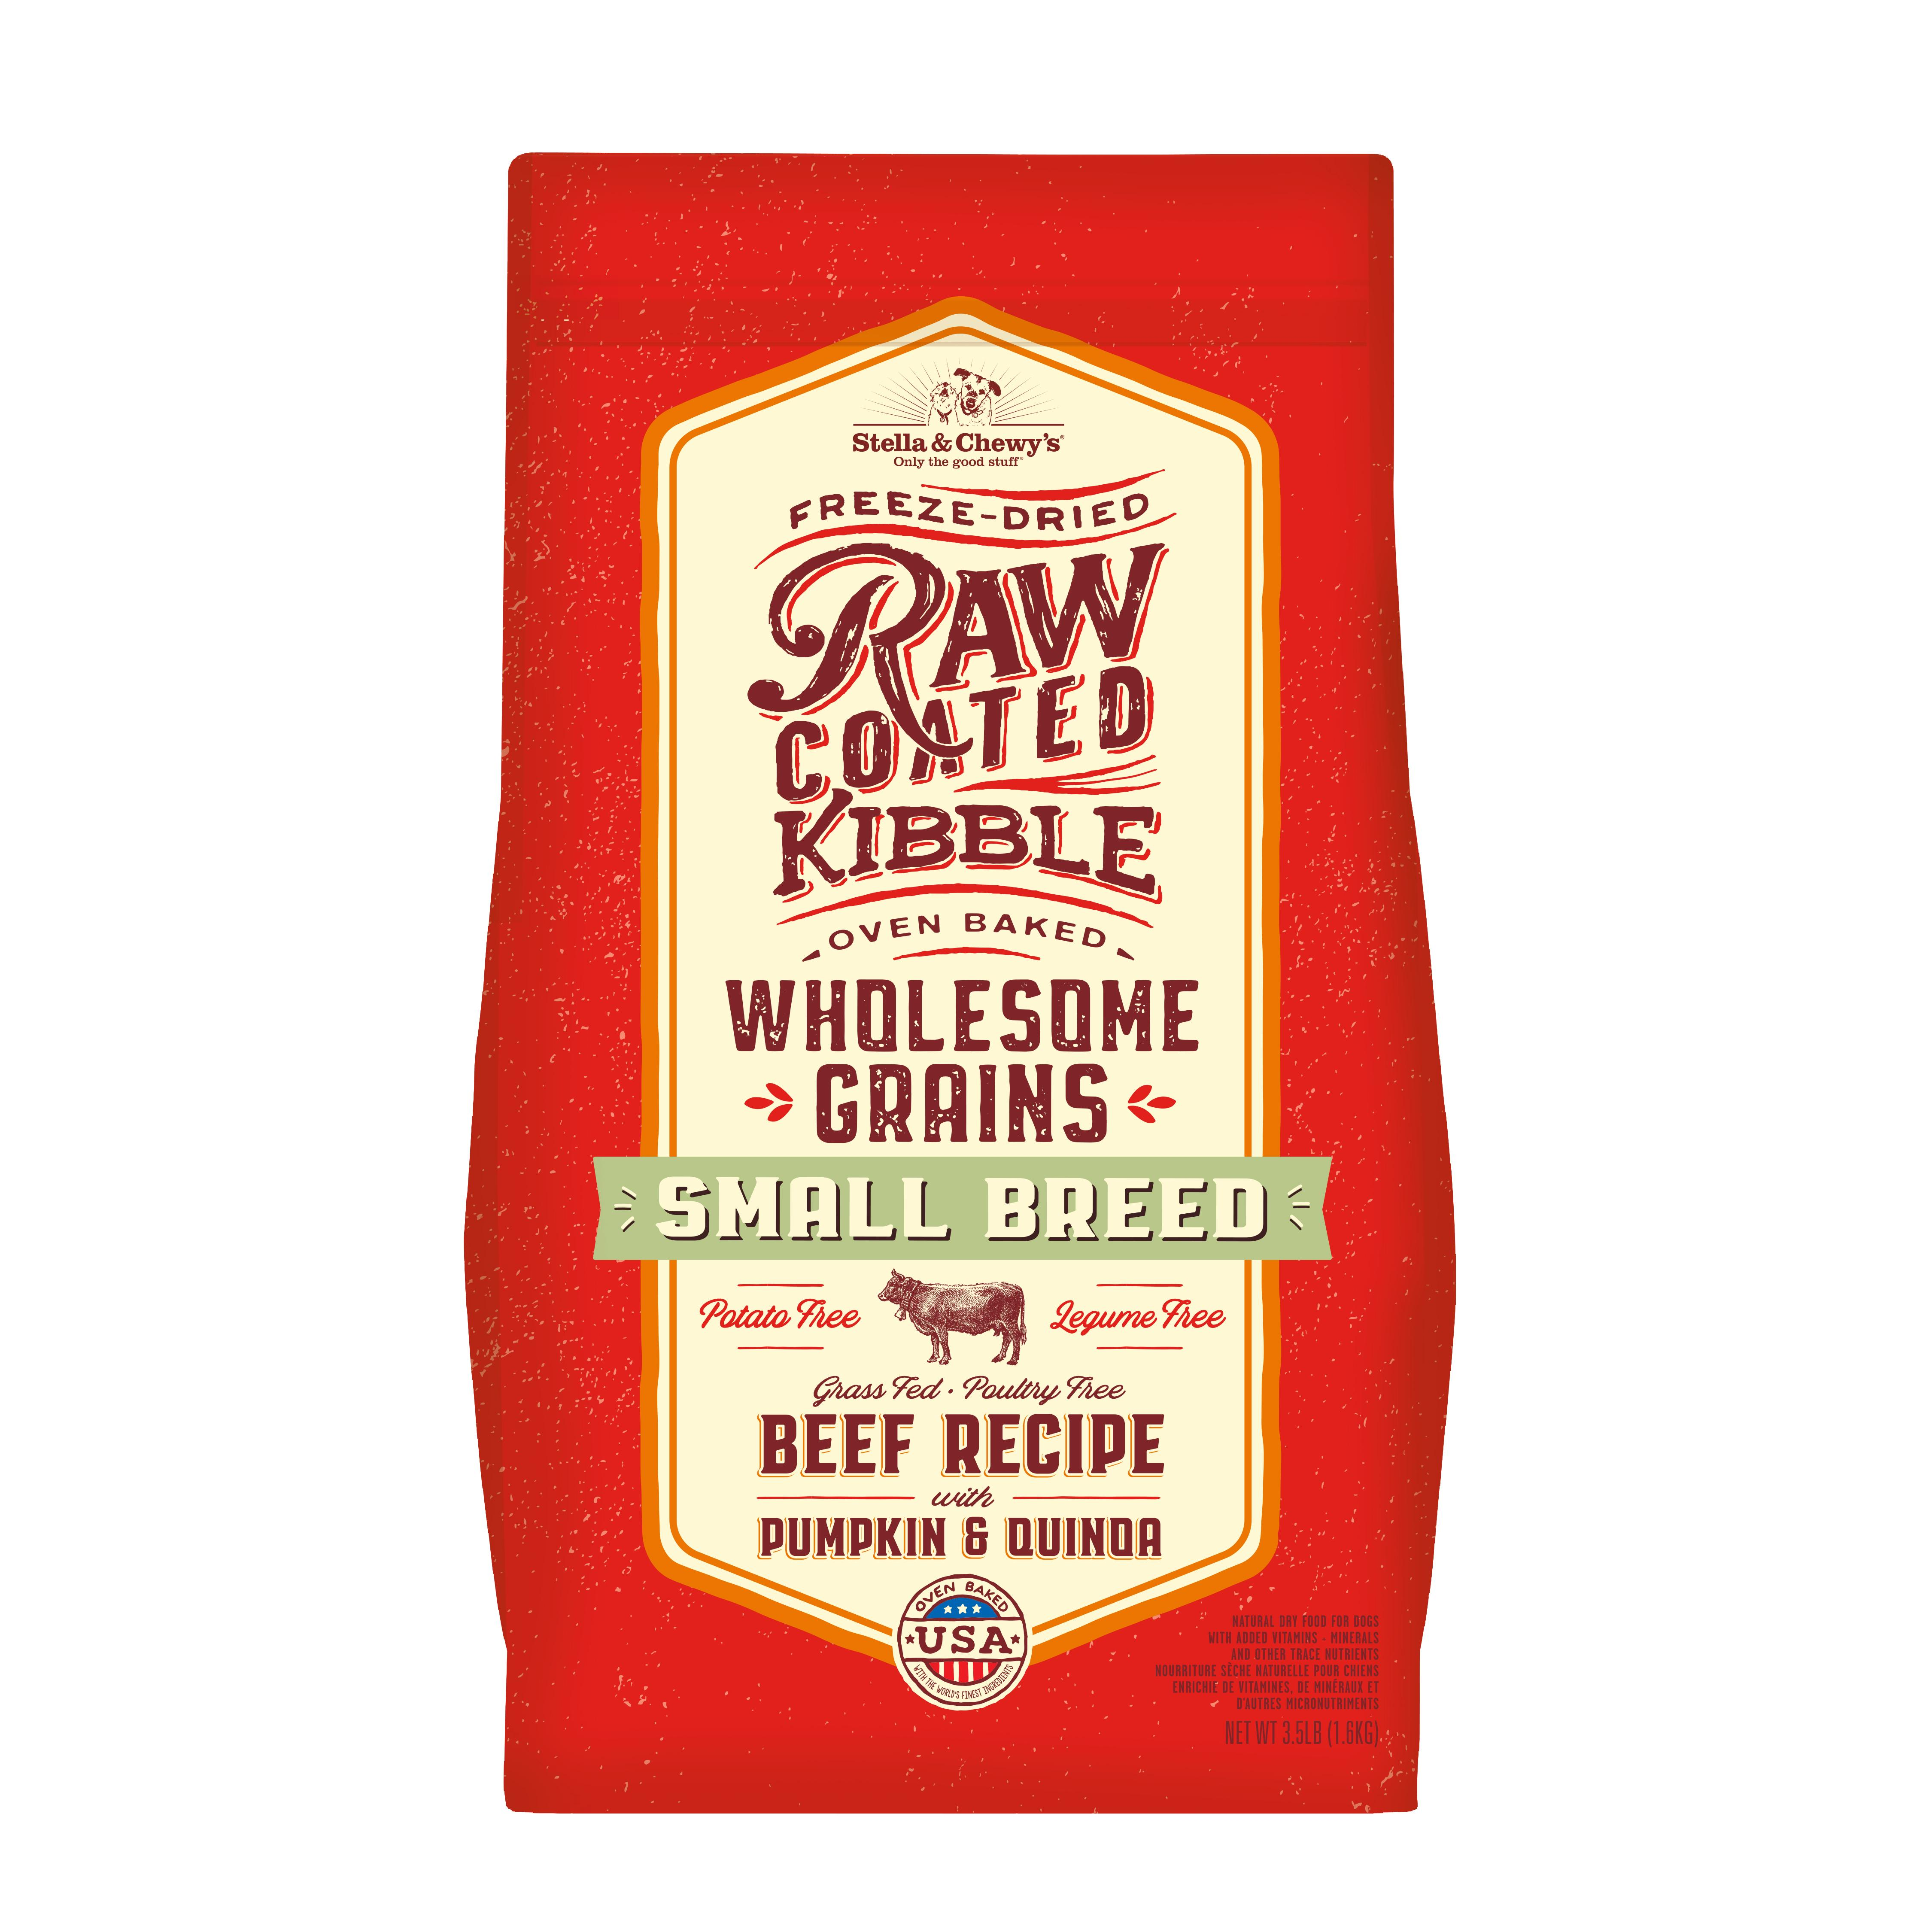 Stella & Chewy's Raw Coated Kibble Wholesome Grains Beef, Pumpkin & Quinoa Small Breed Dry Dog Food, 3.5-lb